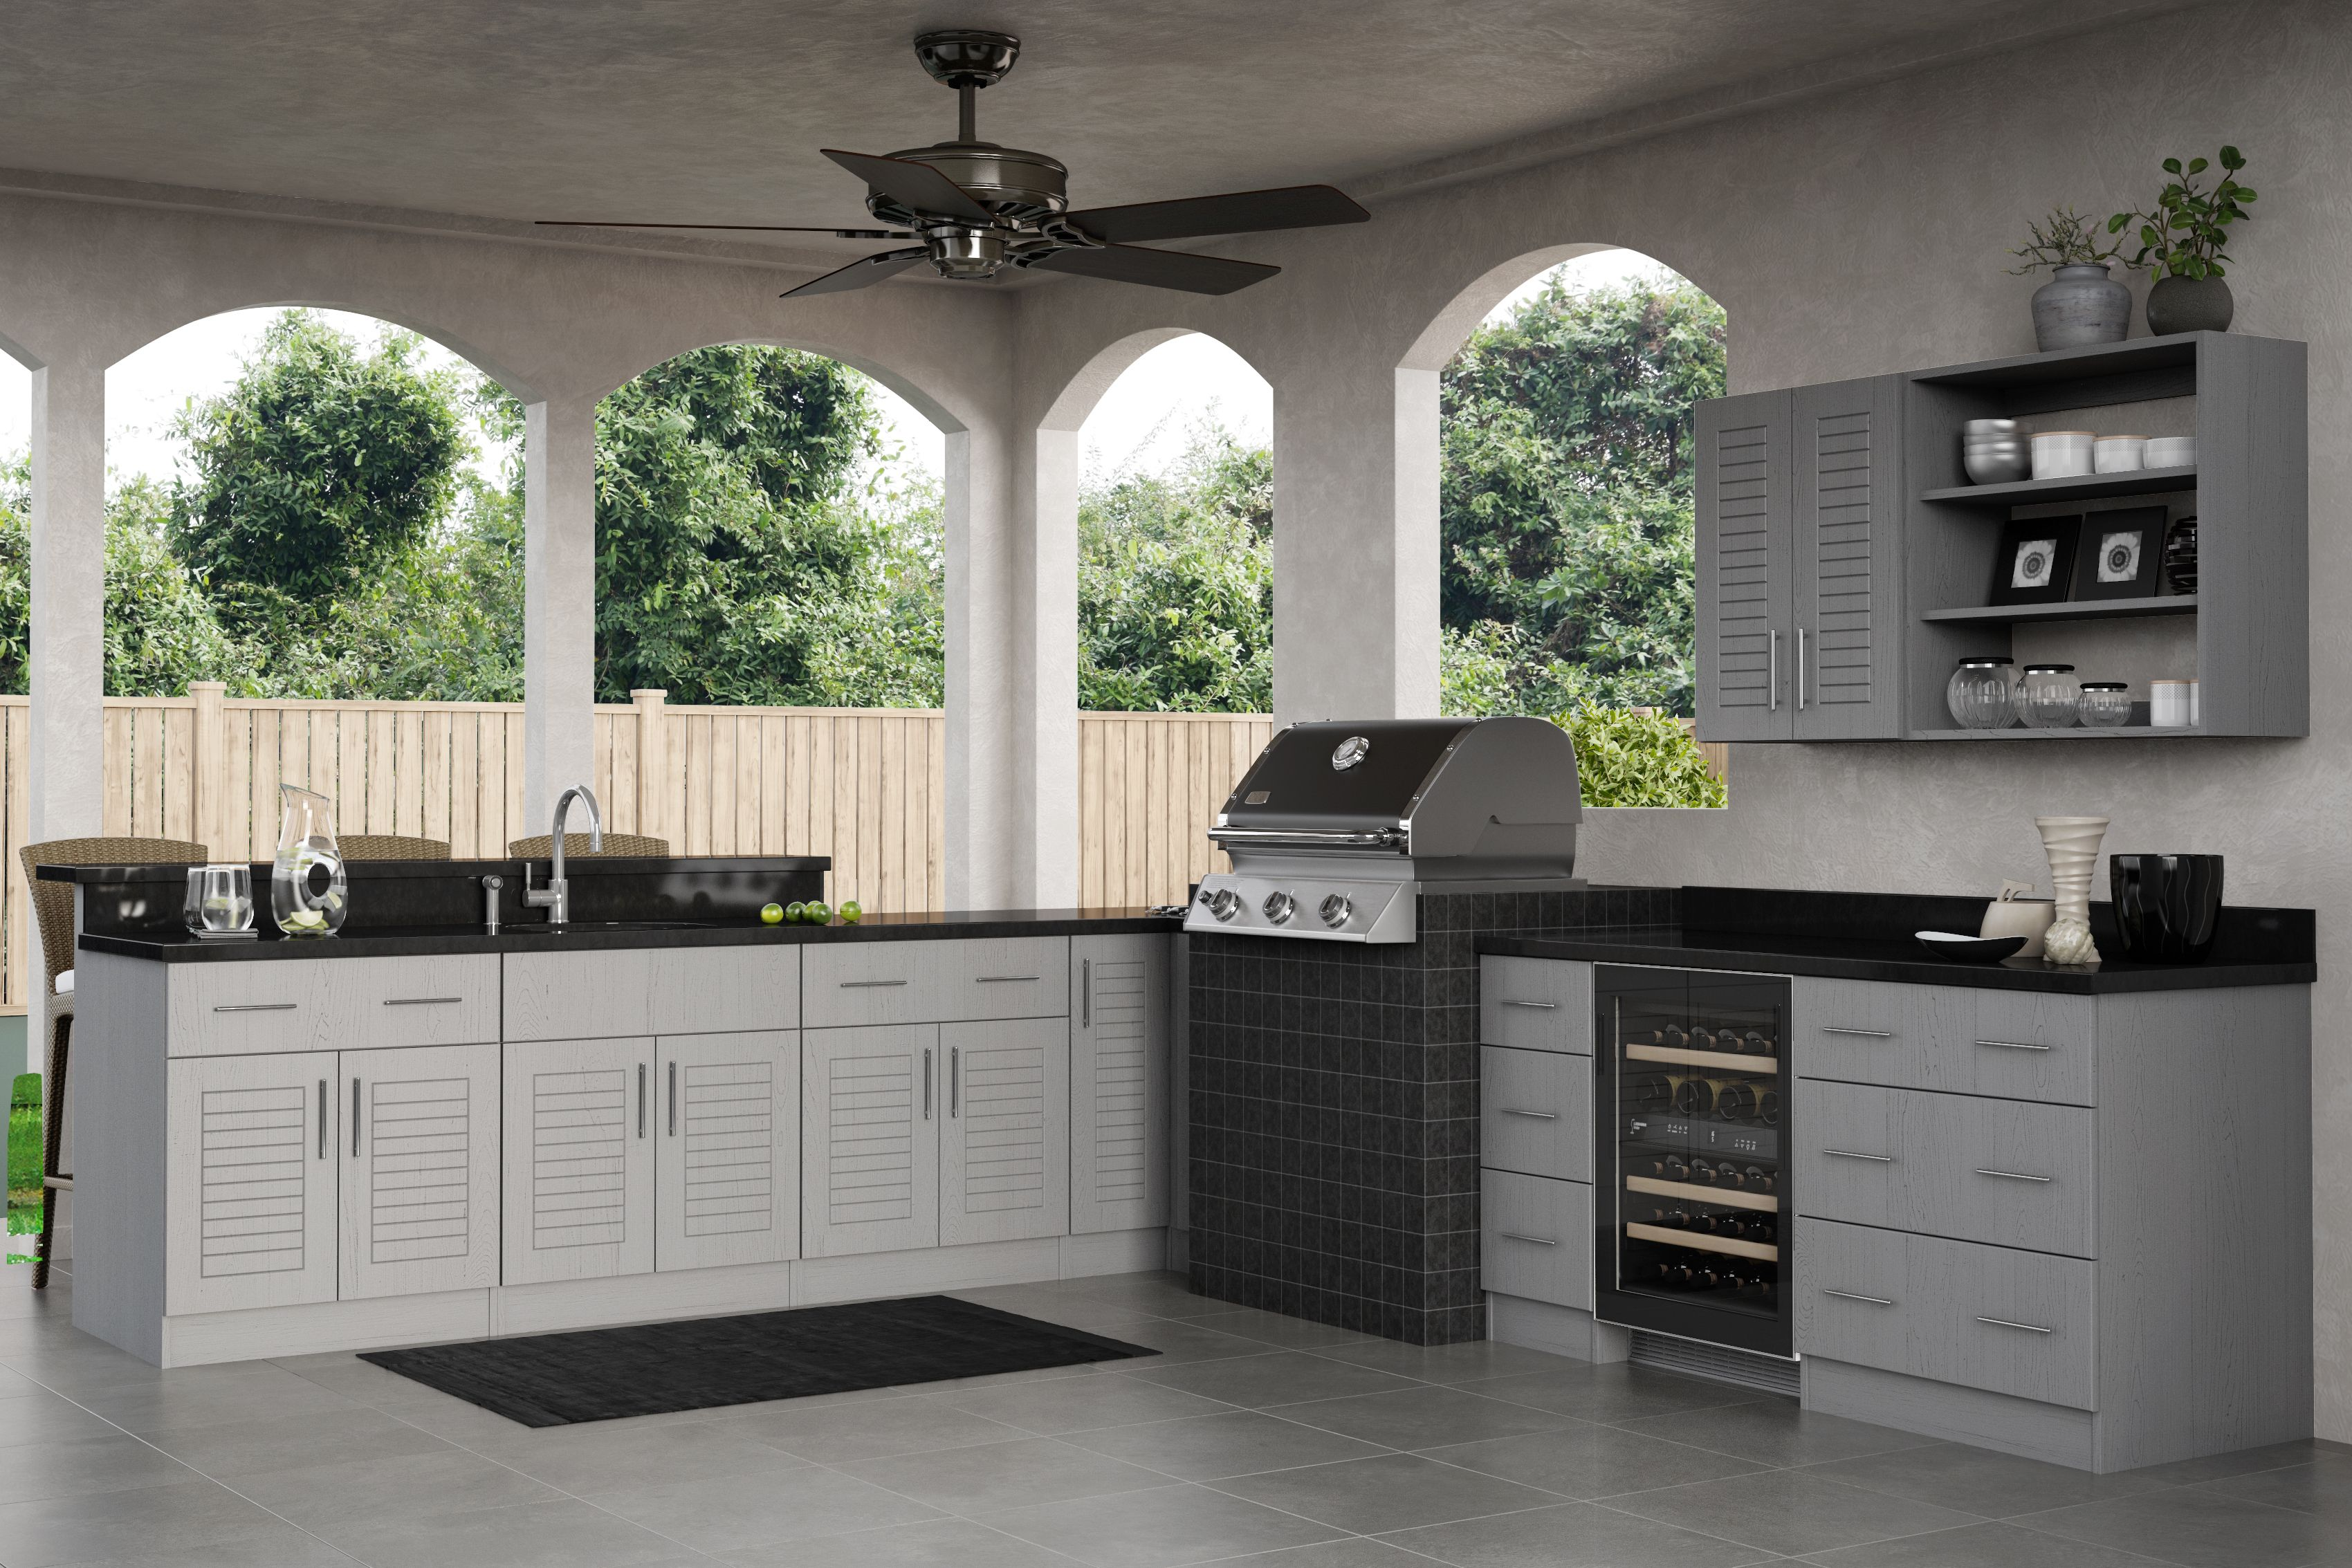 Key West Rustic Gray Weather Strong Outdoor Cabinetry Outdoor Kitchen Cabinetry Woodworking School